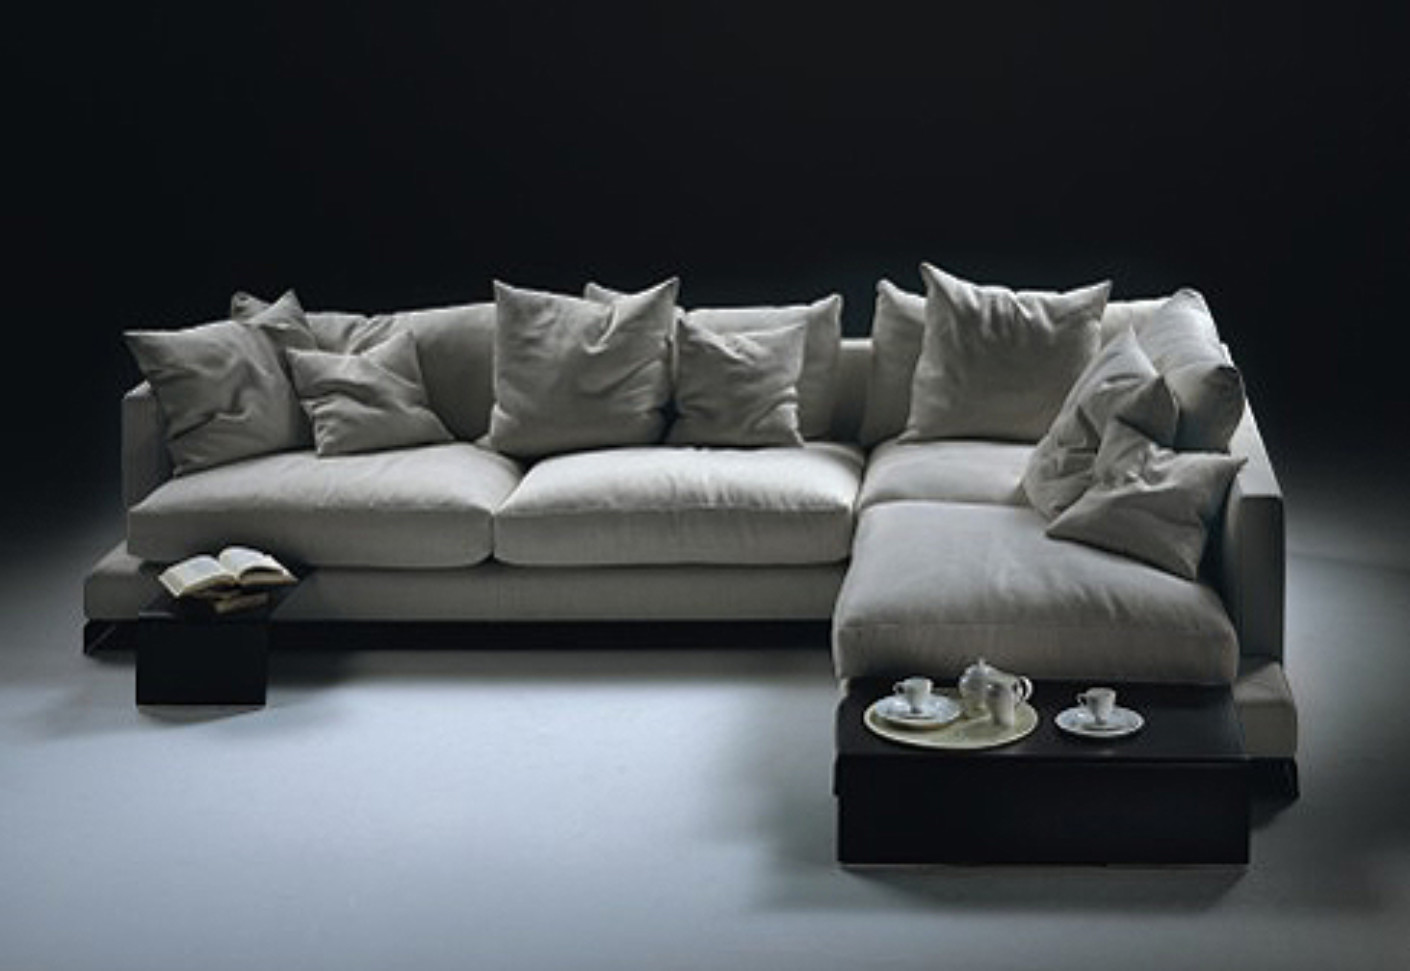 Sofa Cream Nz Long Island Sectional Sofa By Flexform | Stylepark